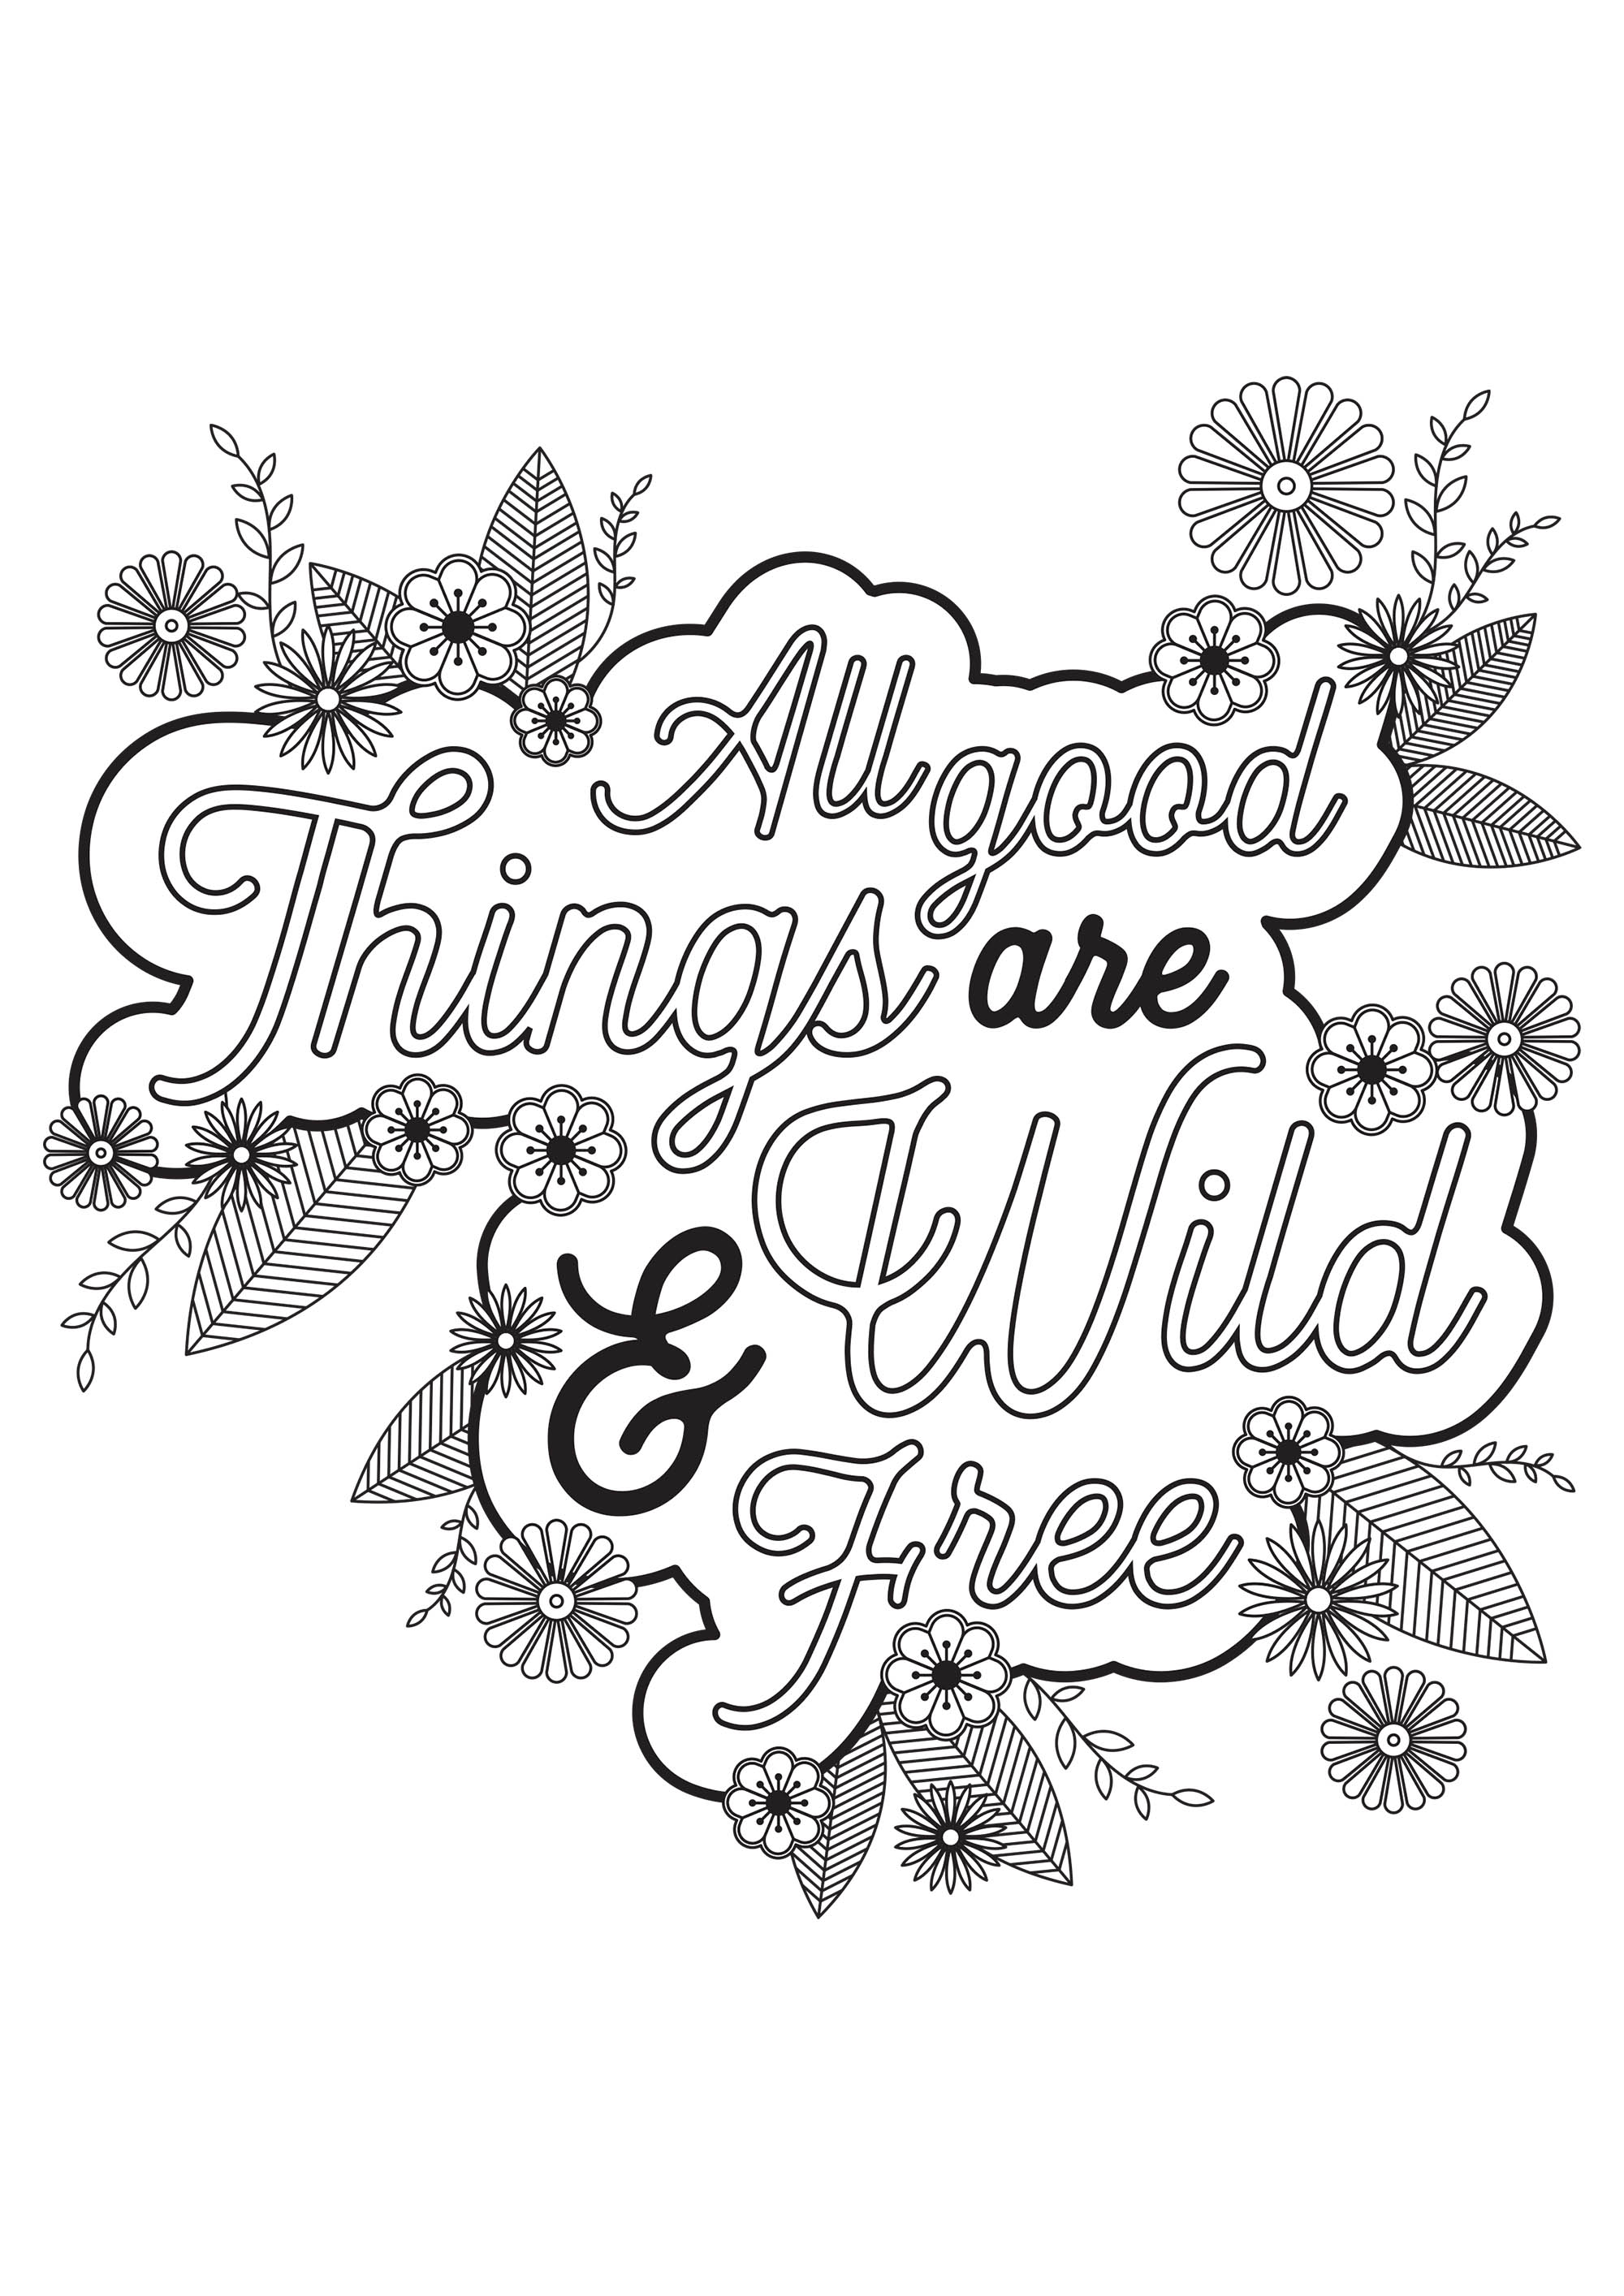 All good things free clipart clipart images gallery for free.